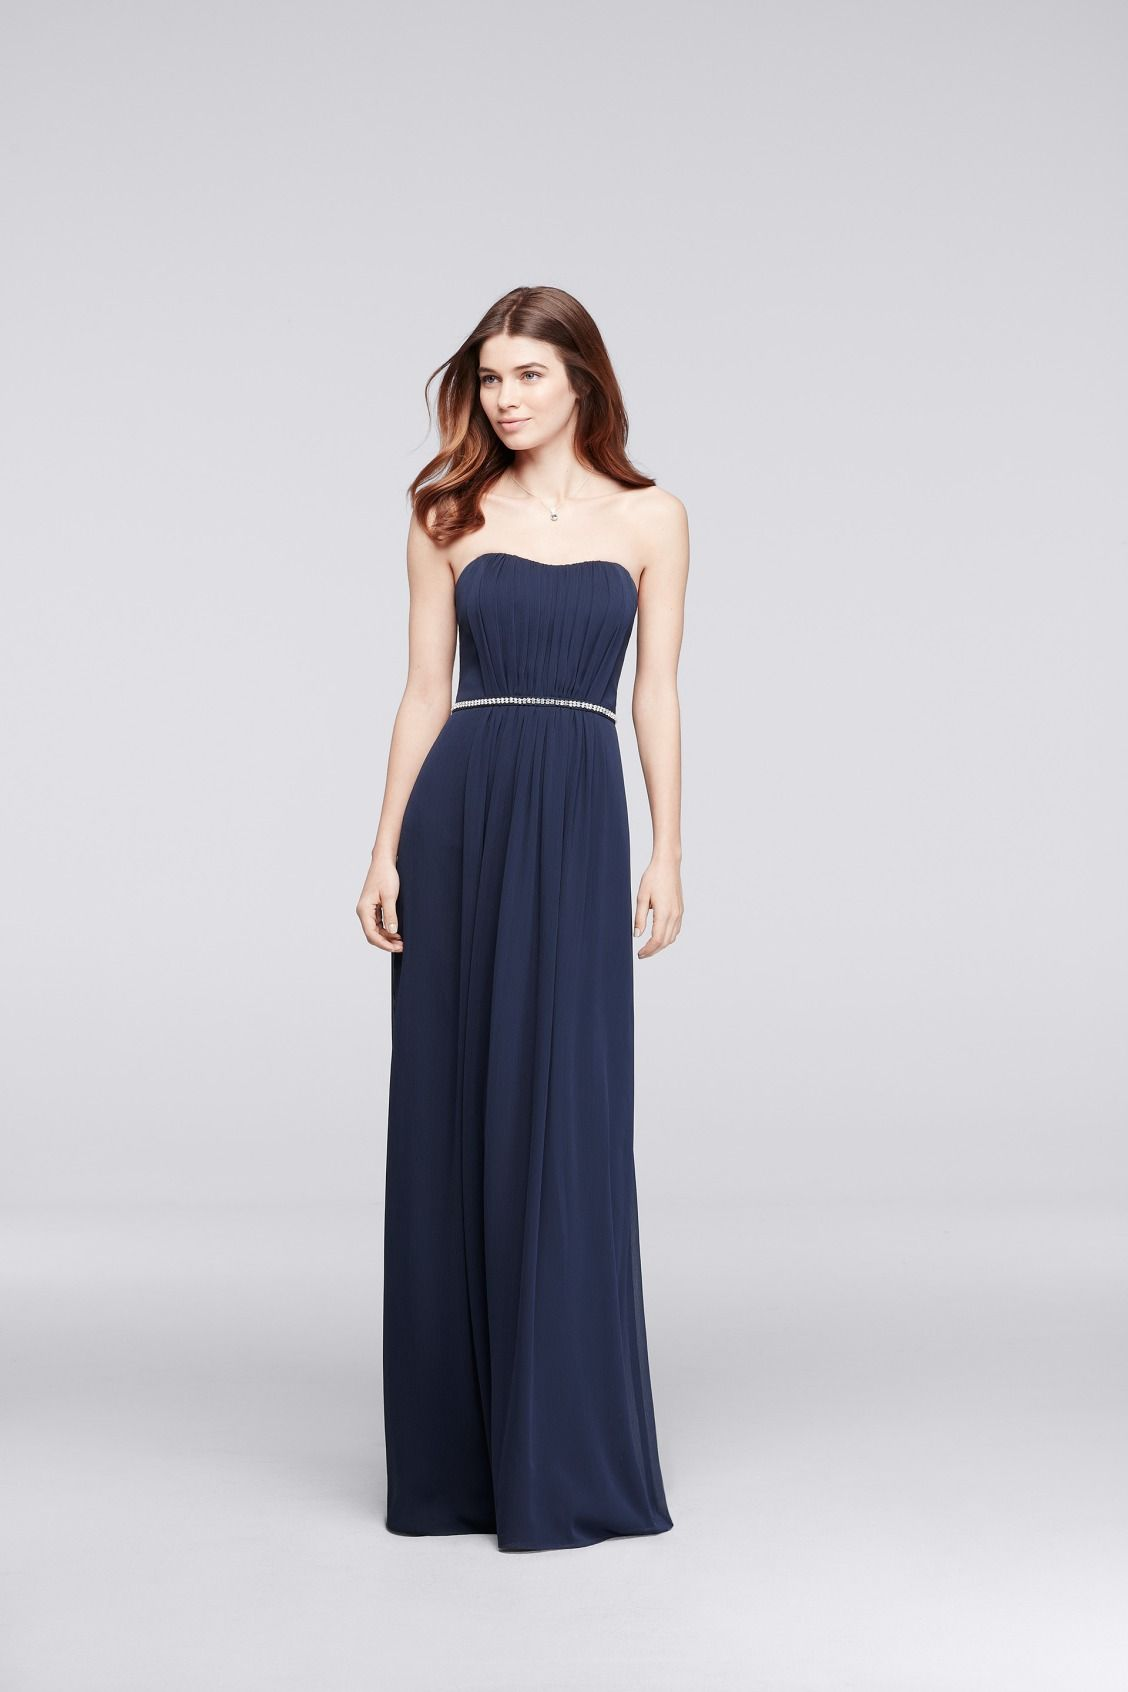 Long Strapless Bridesmaid Dress with Beaded Belt in Marine available ...